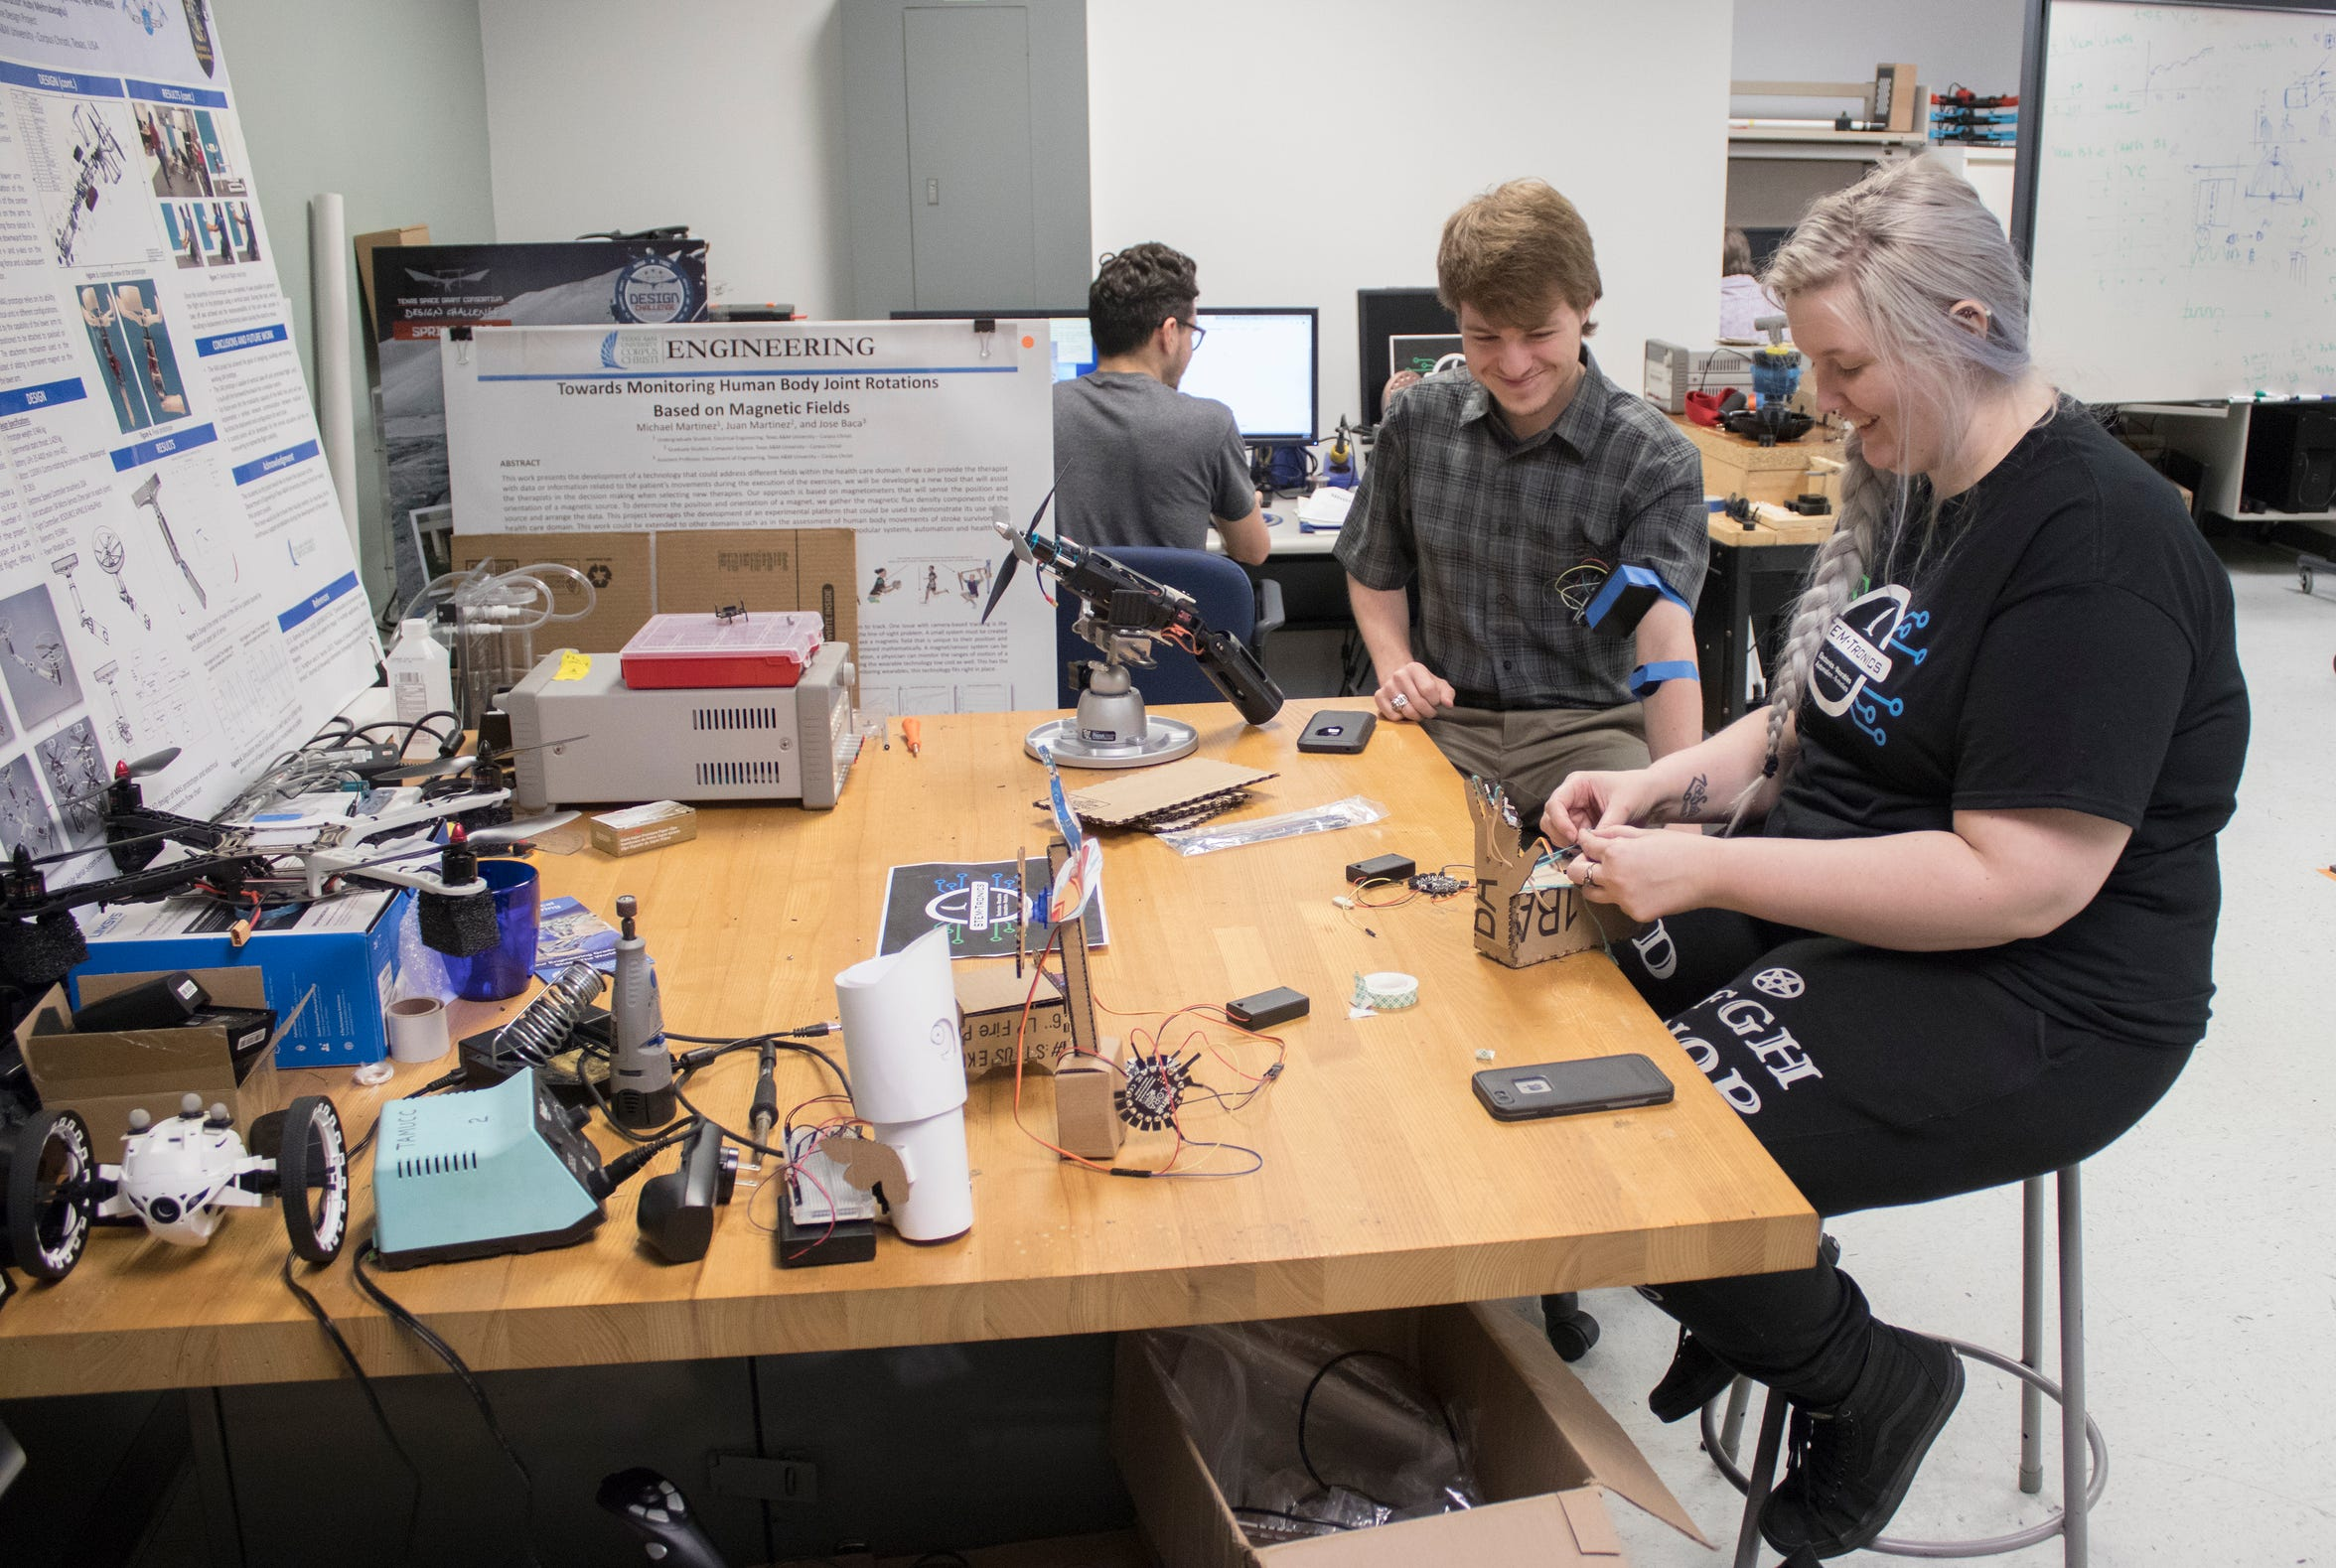 Engineering students work on their projects at Texas A&M University Corpus Christi.